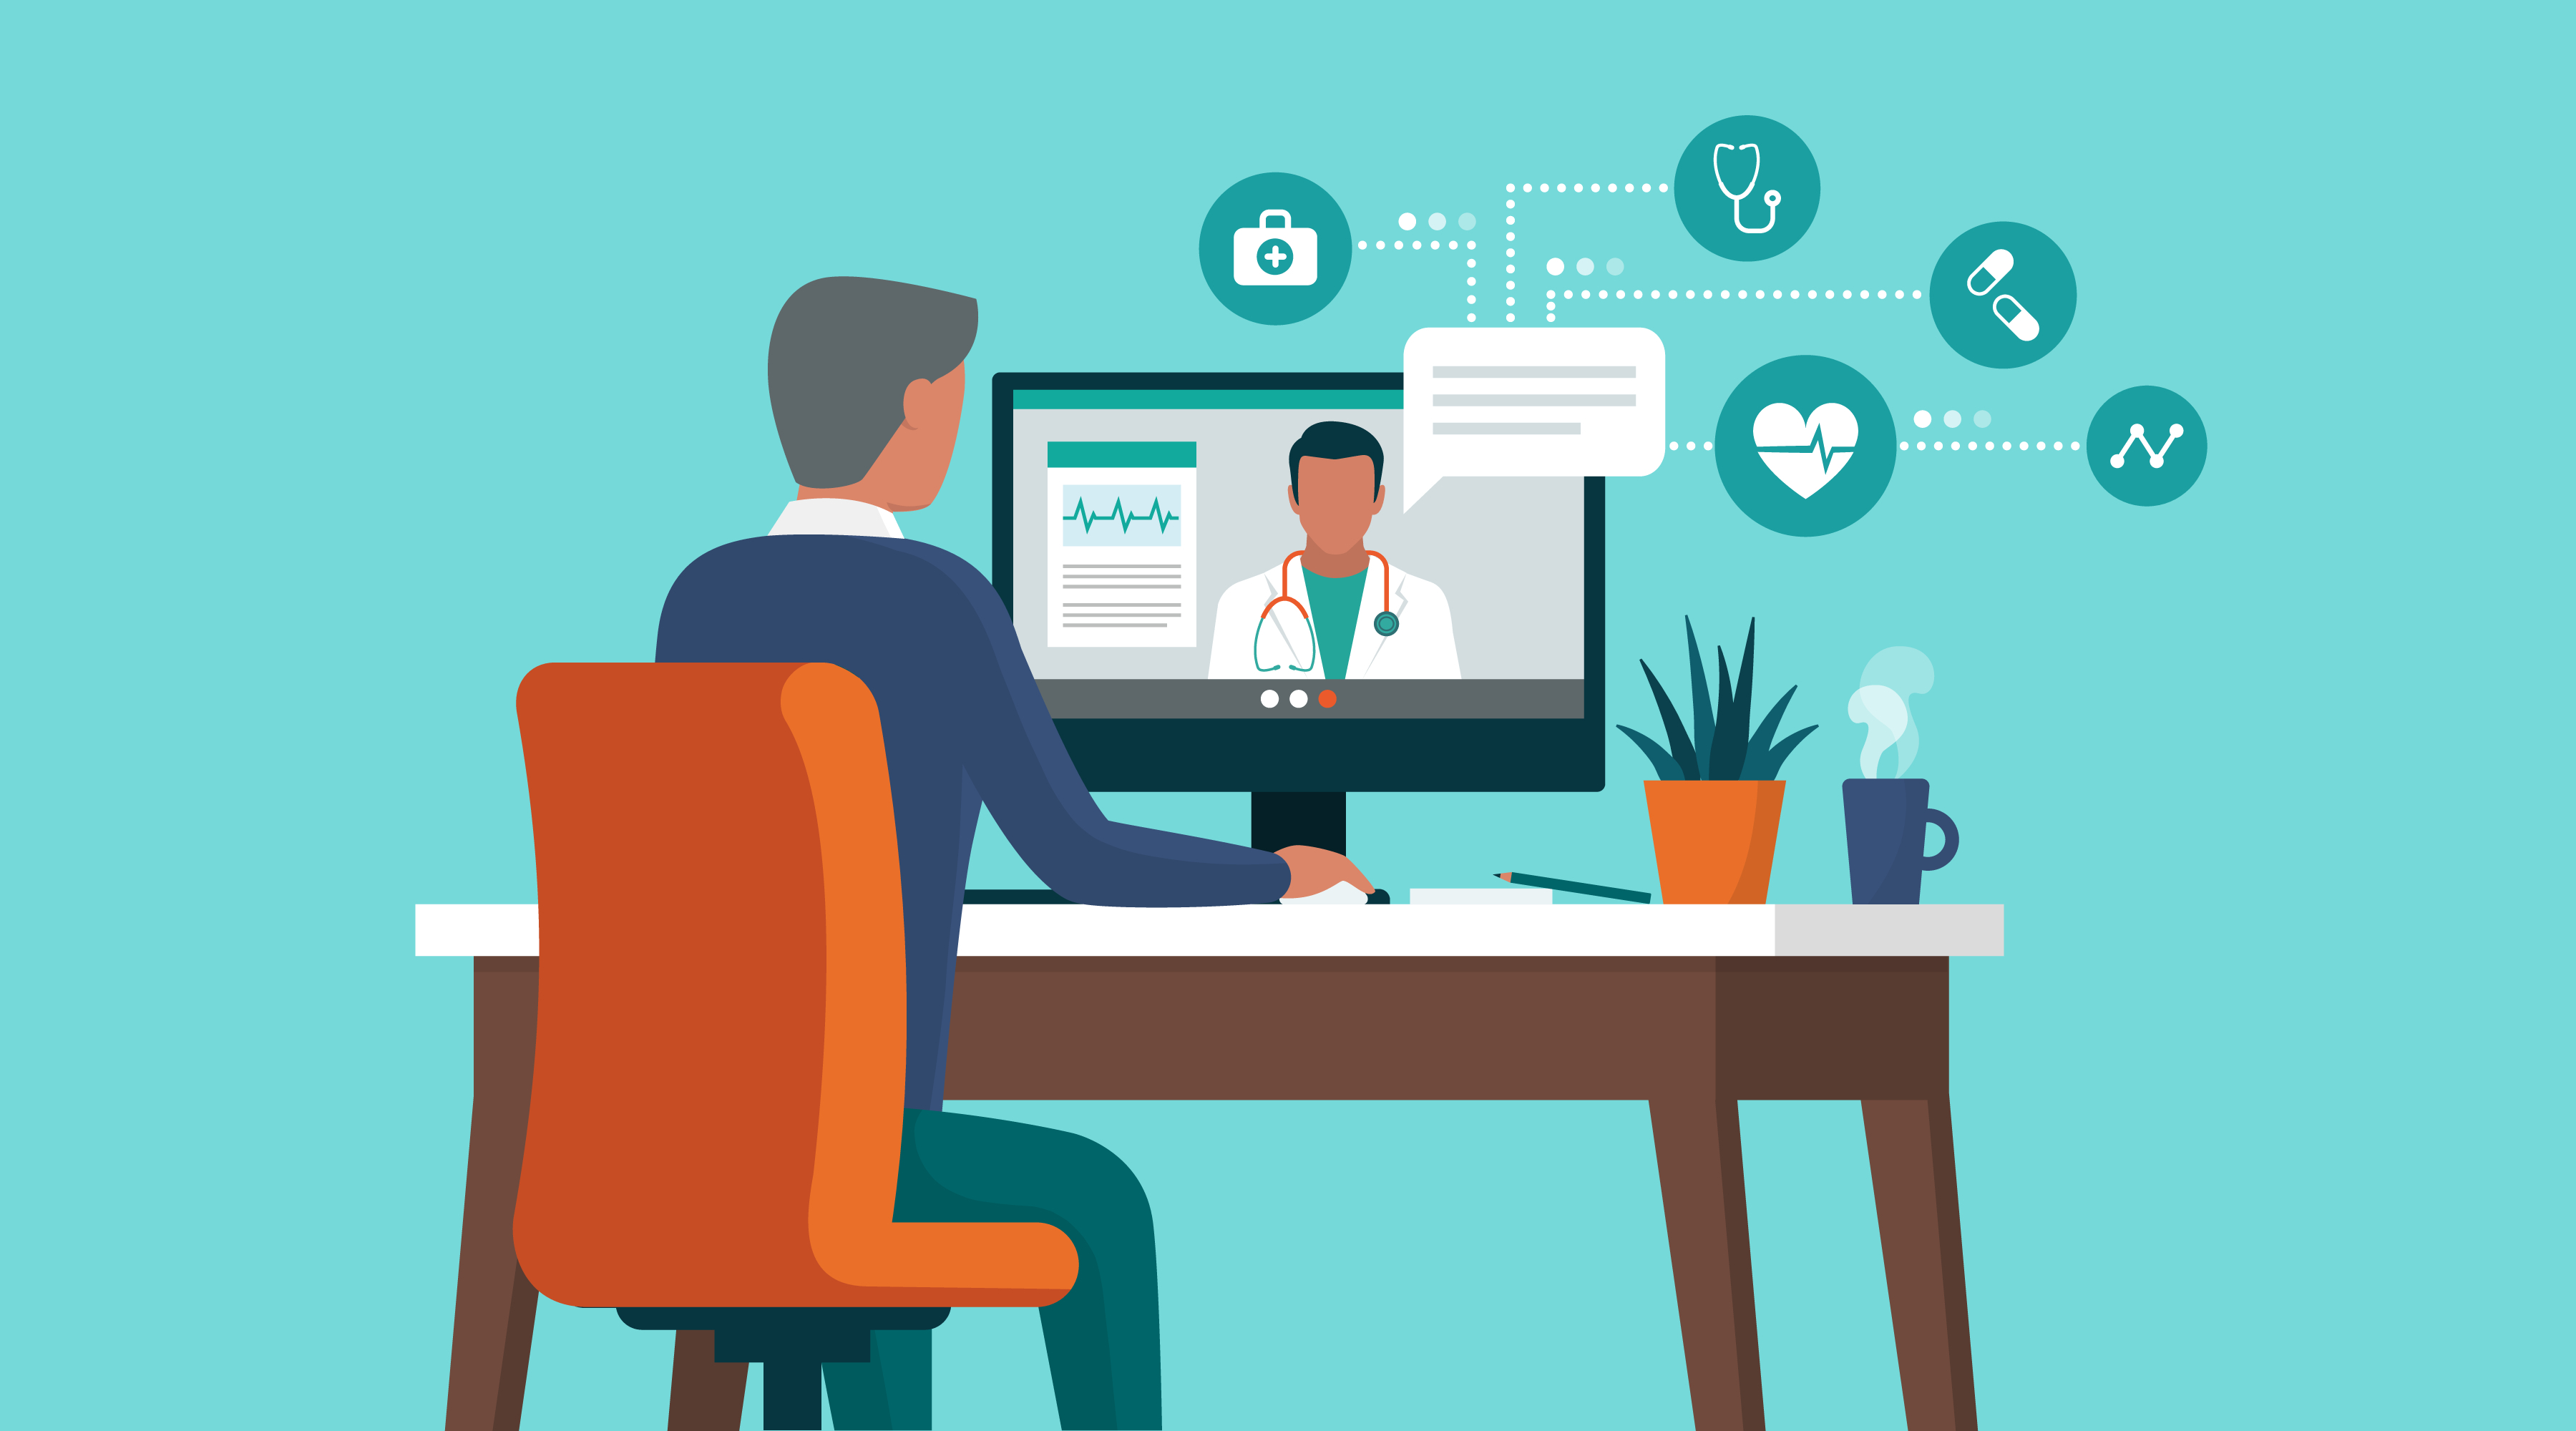 Illustration of a patient meeting with a doctor via their desktop computer.